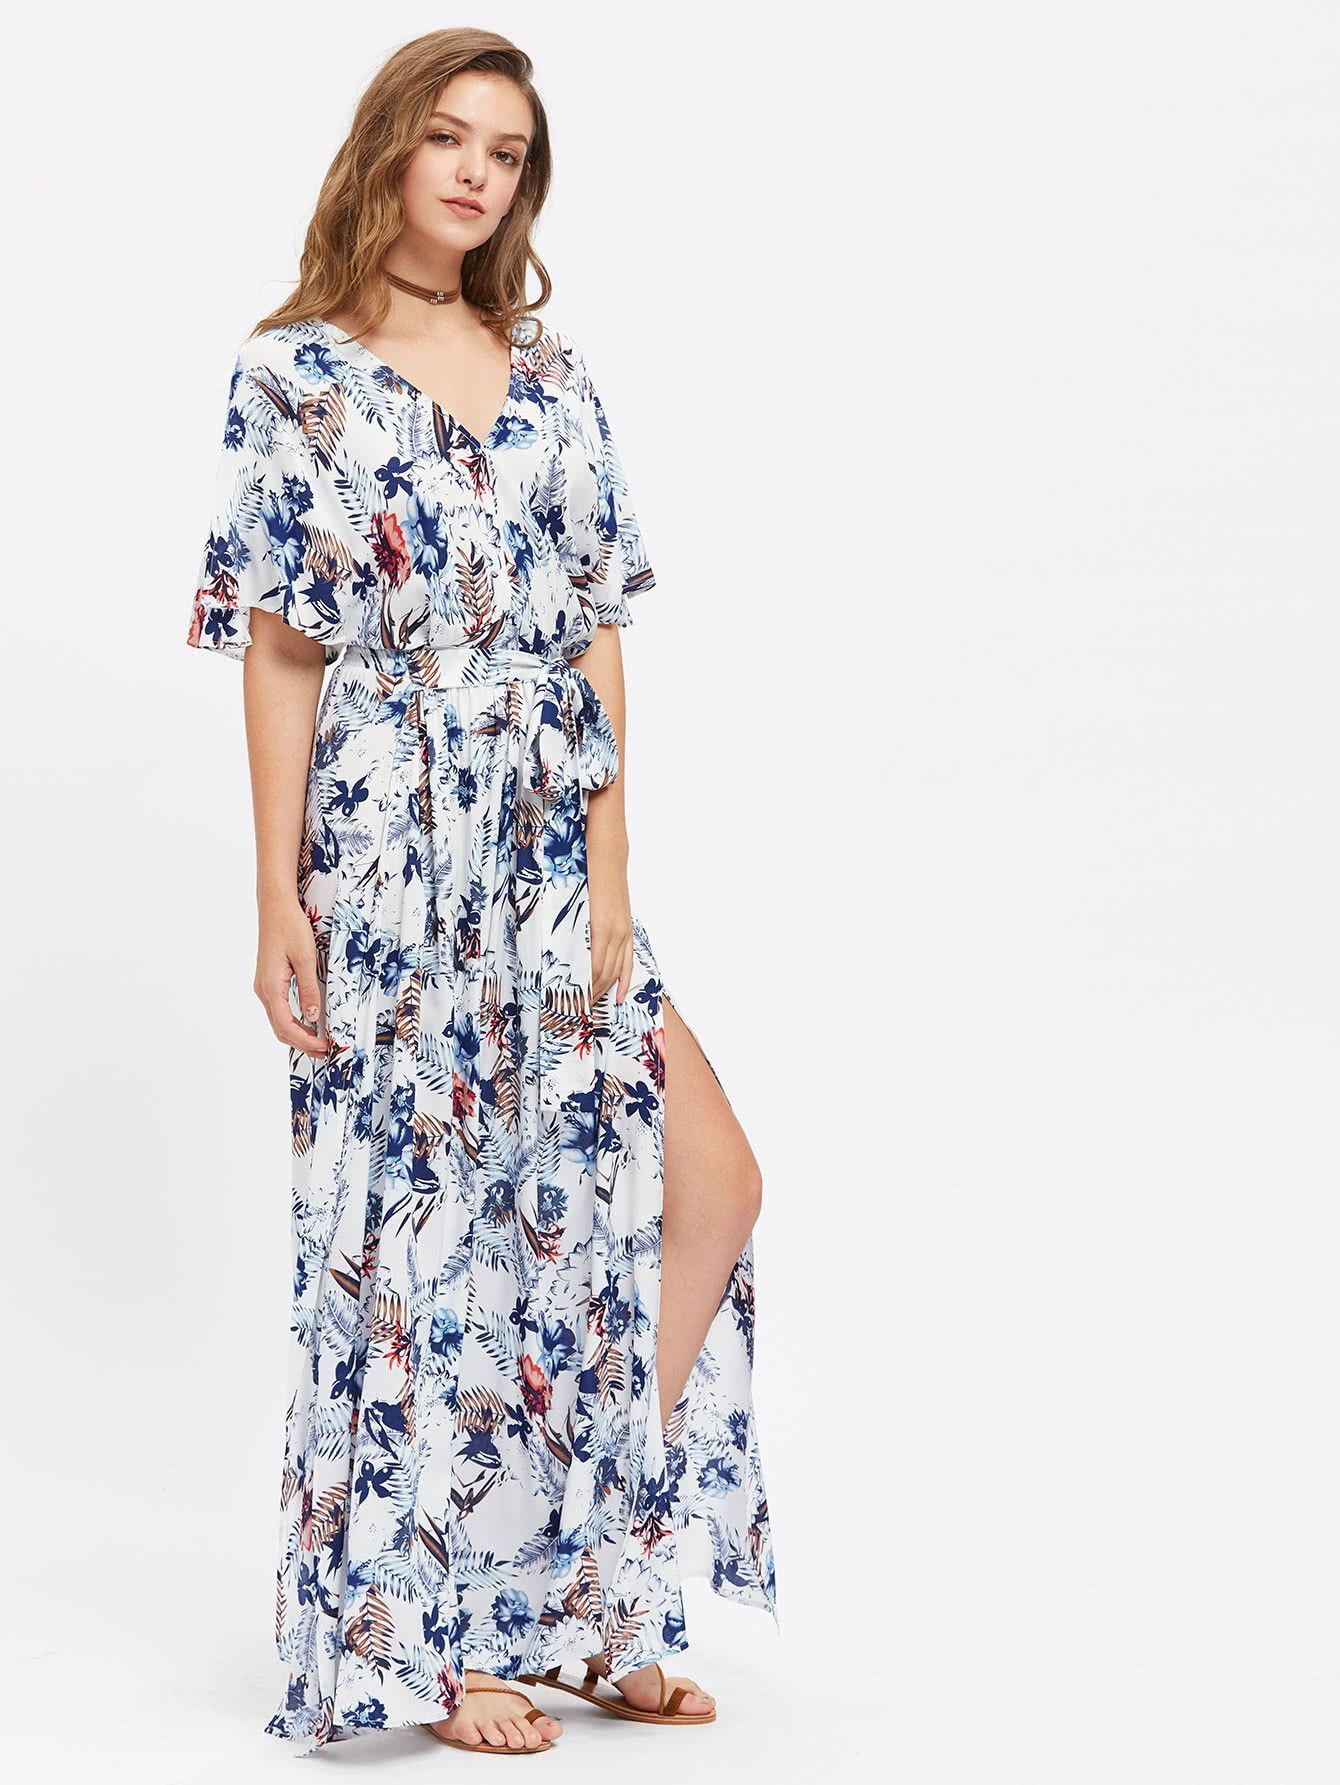 1f31cfc7d0675d Belt: YES Fabric: Fabric has no stretch Season: Summer Type: Kimono Pattern  Type: Floral Sleeve Length: Half Sleeve Color: Multicolor Dresses Length:  Maxi ...